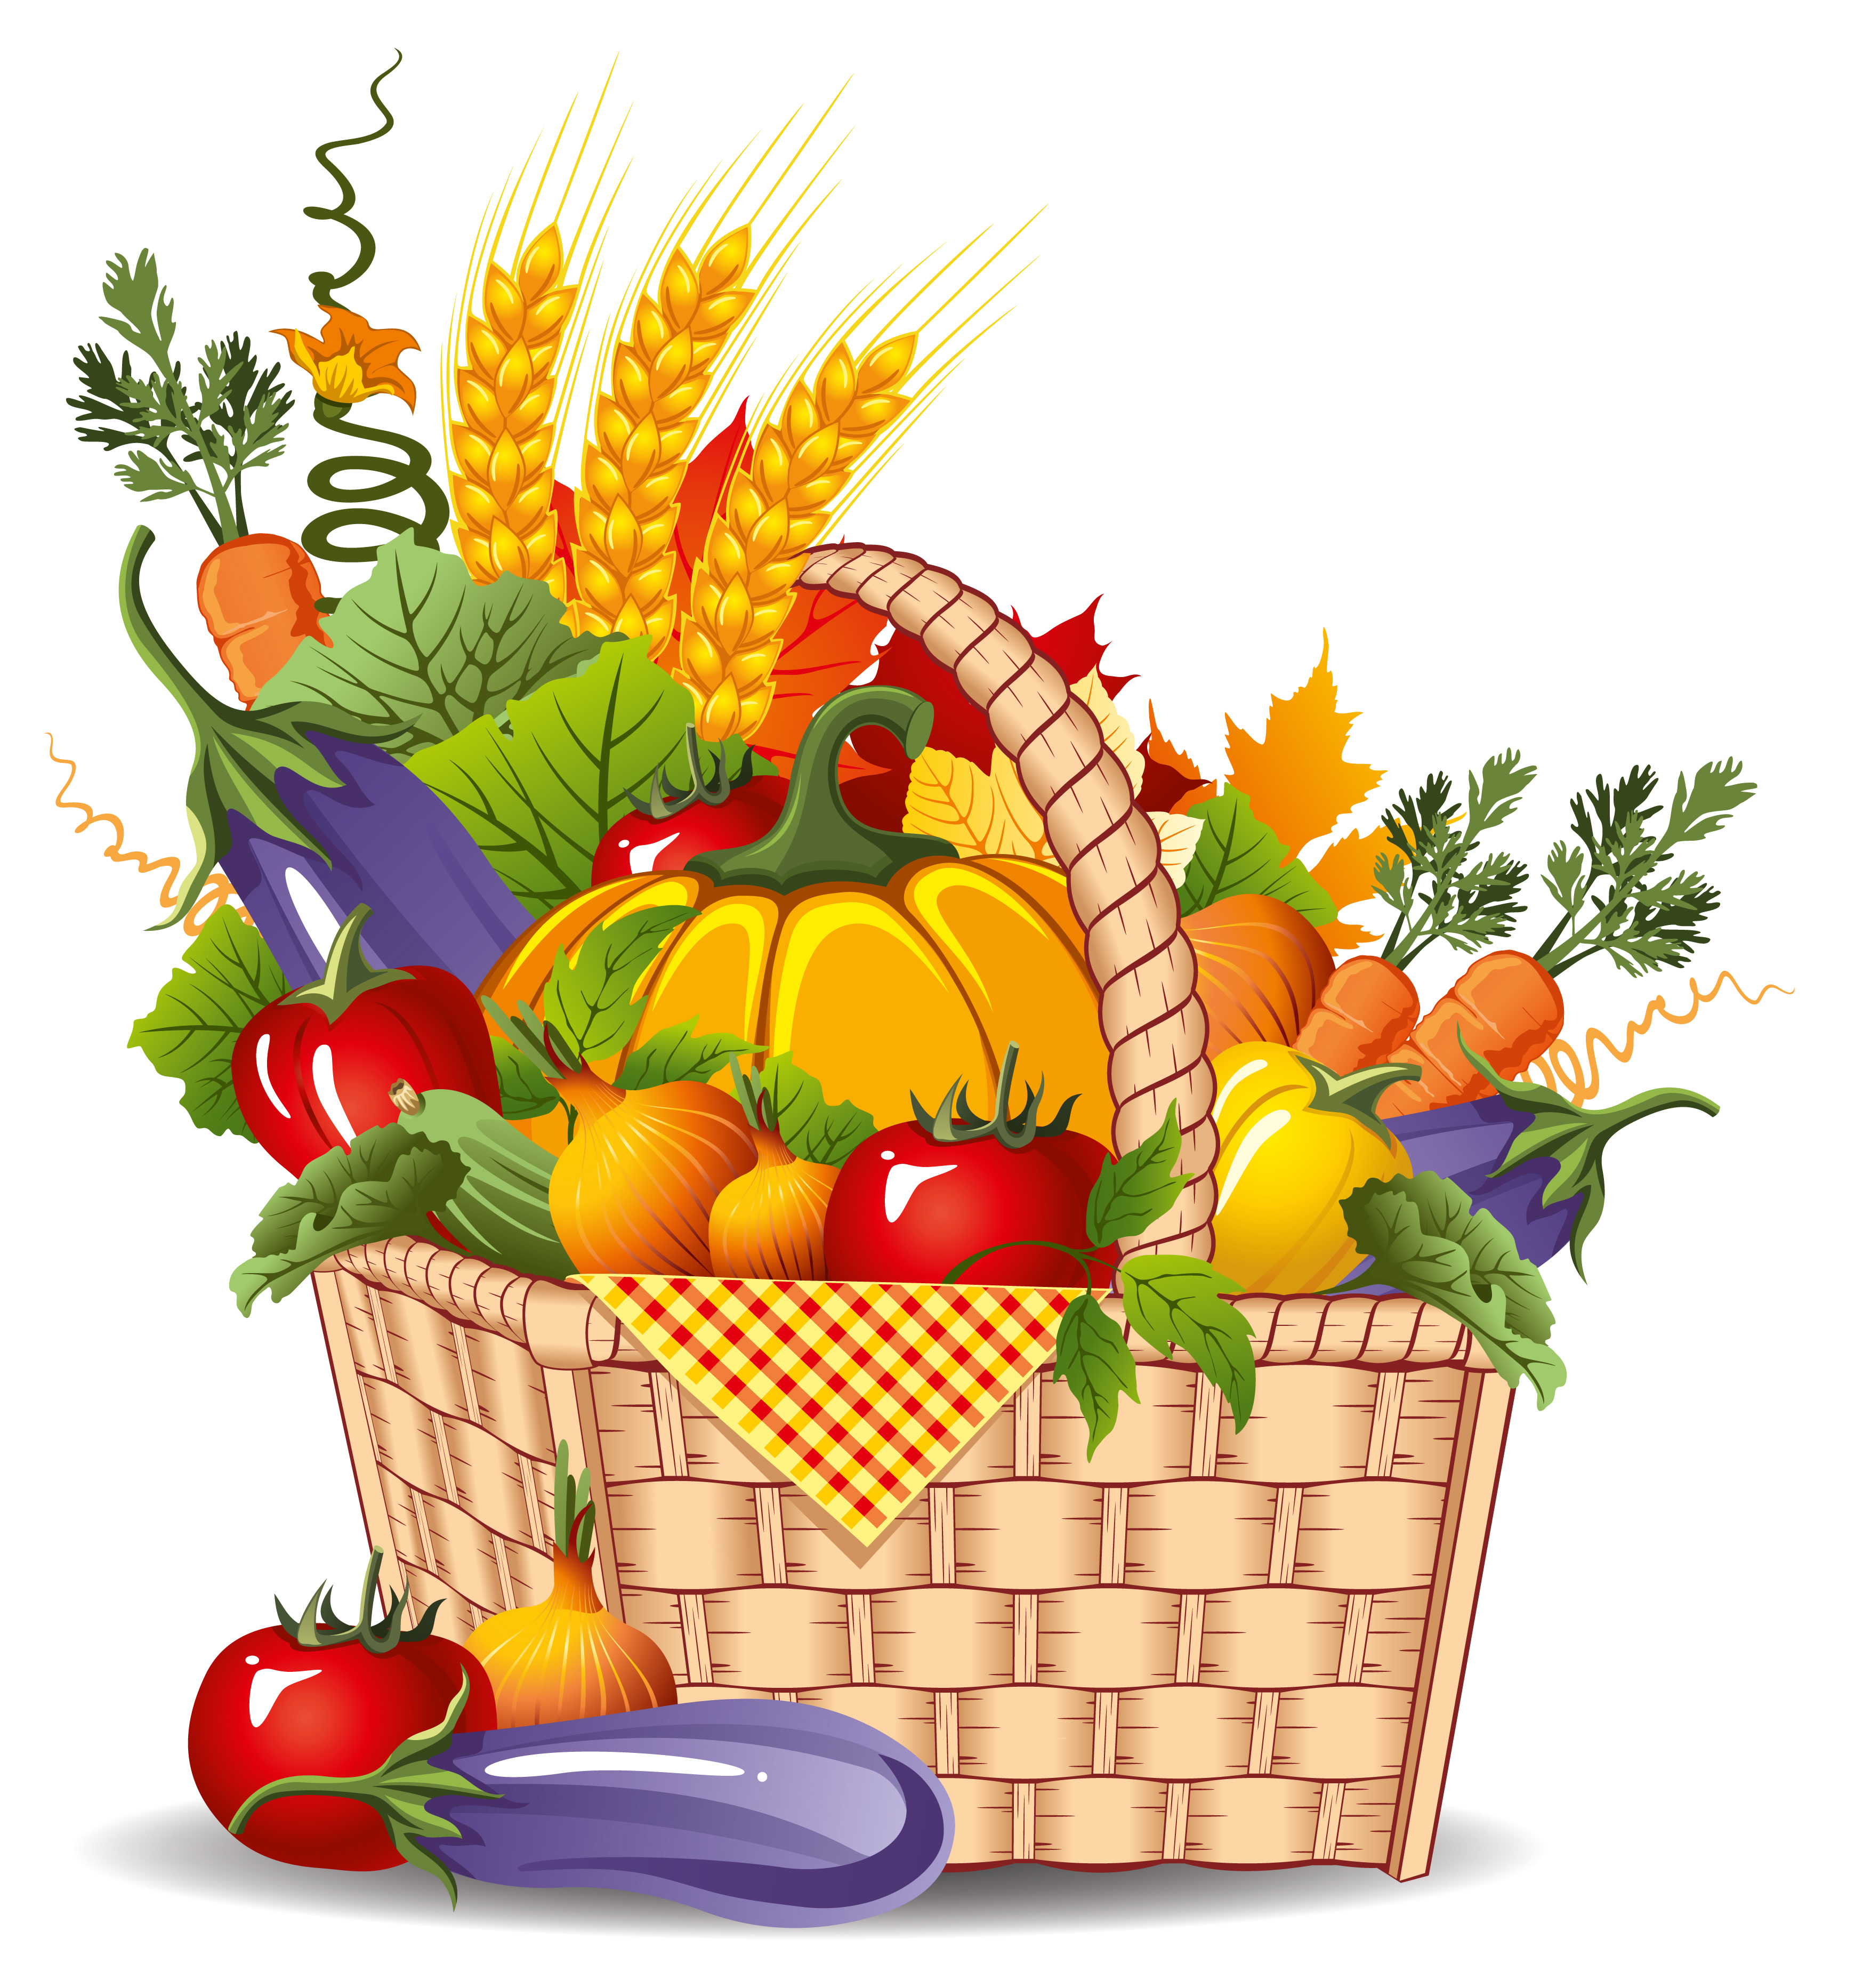 Free Vegetable Basket Cliparts, Download Free Clip Art, Free.